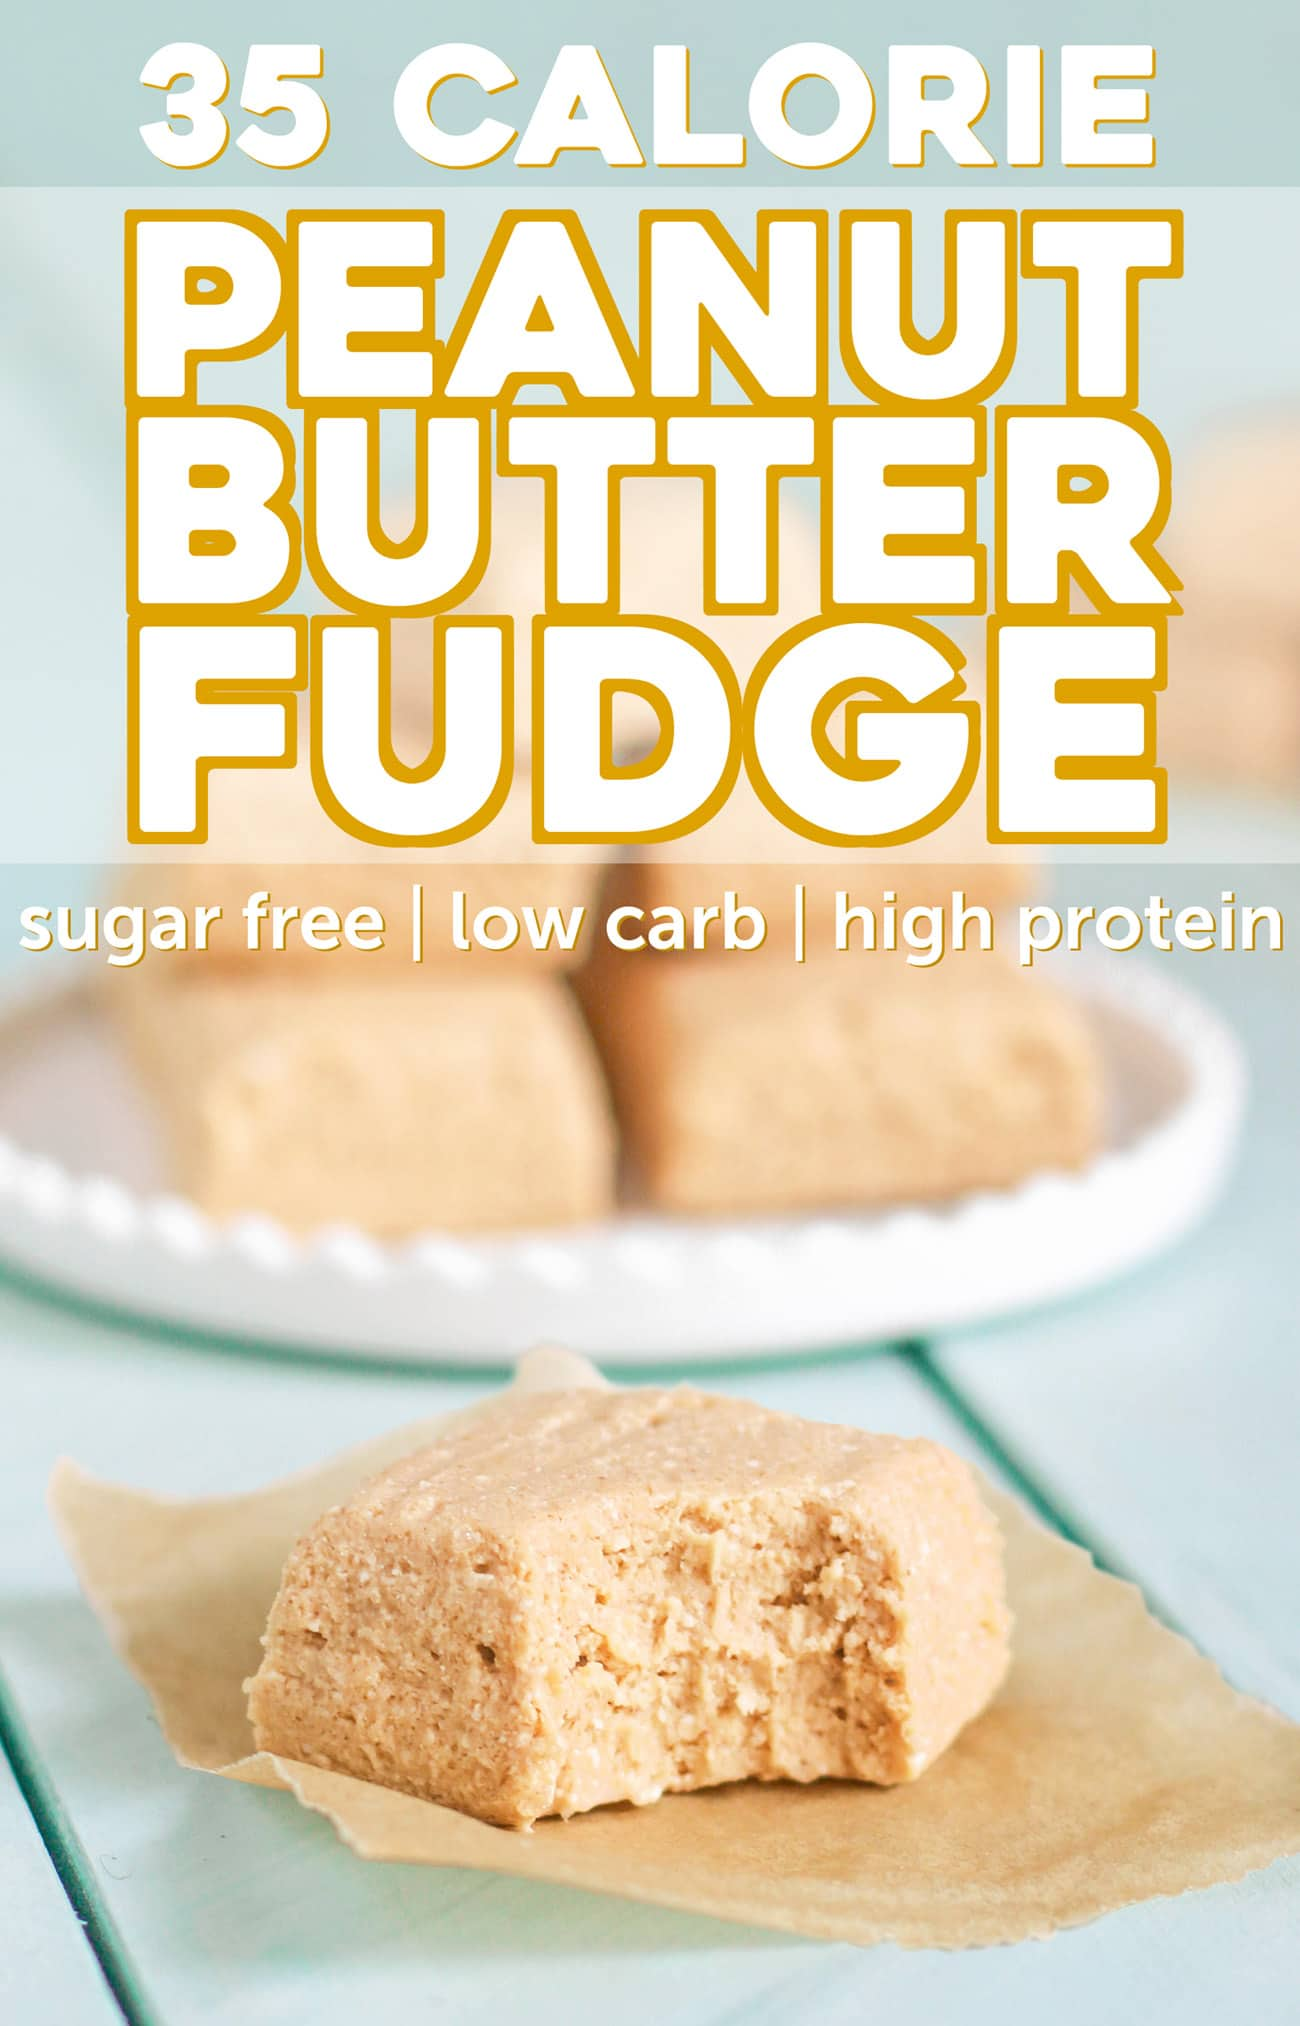 This 35-calorie Peanut Butter Fudge is rich and sweet, yet secretly healthy with only 1g of fat plus 4.5g of protein! No need for the butter, sugar, and corn syrup. You'd never know it's sugar free, low carb, keto-friendly, low fat, and high protein!